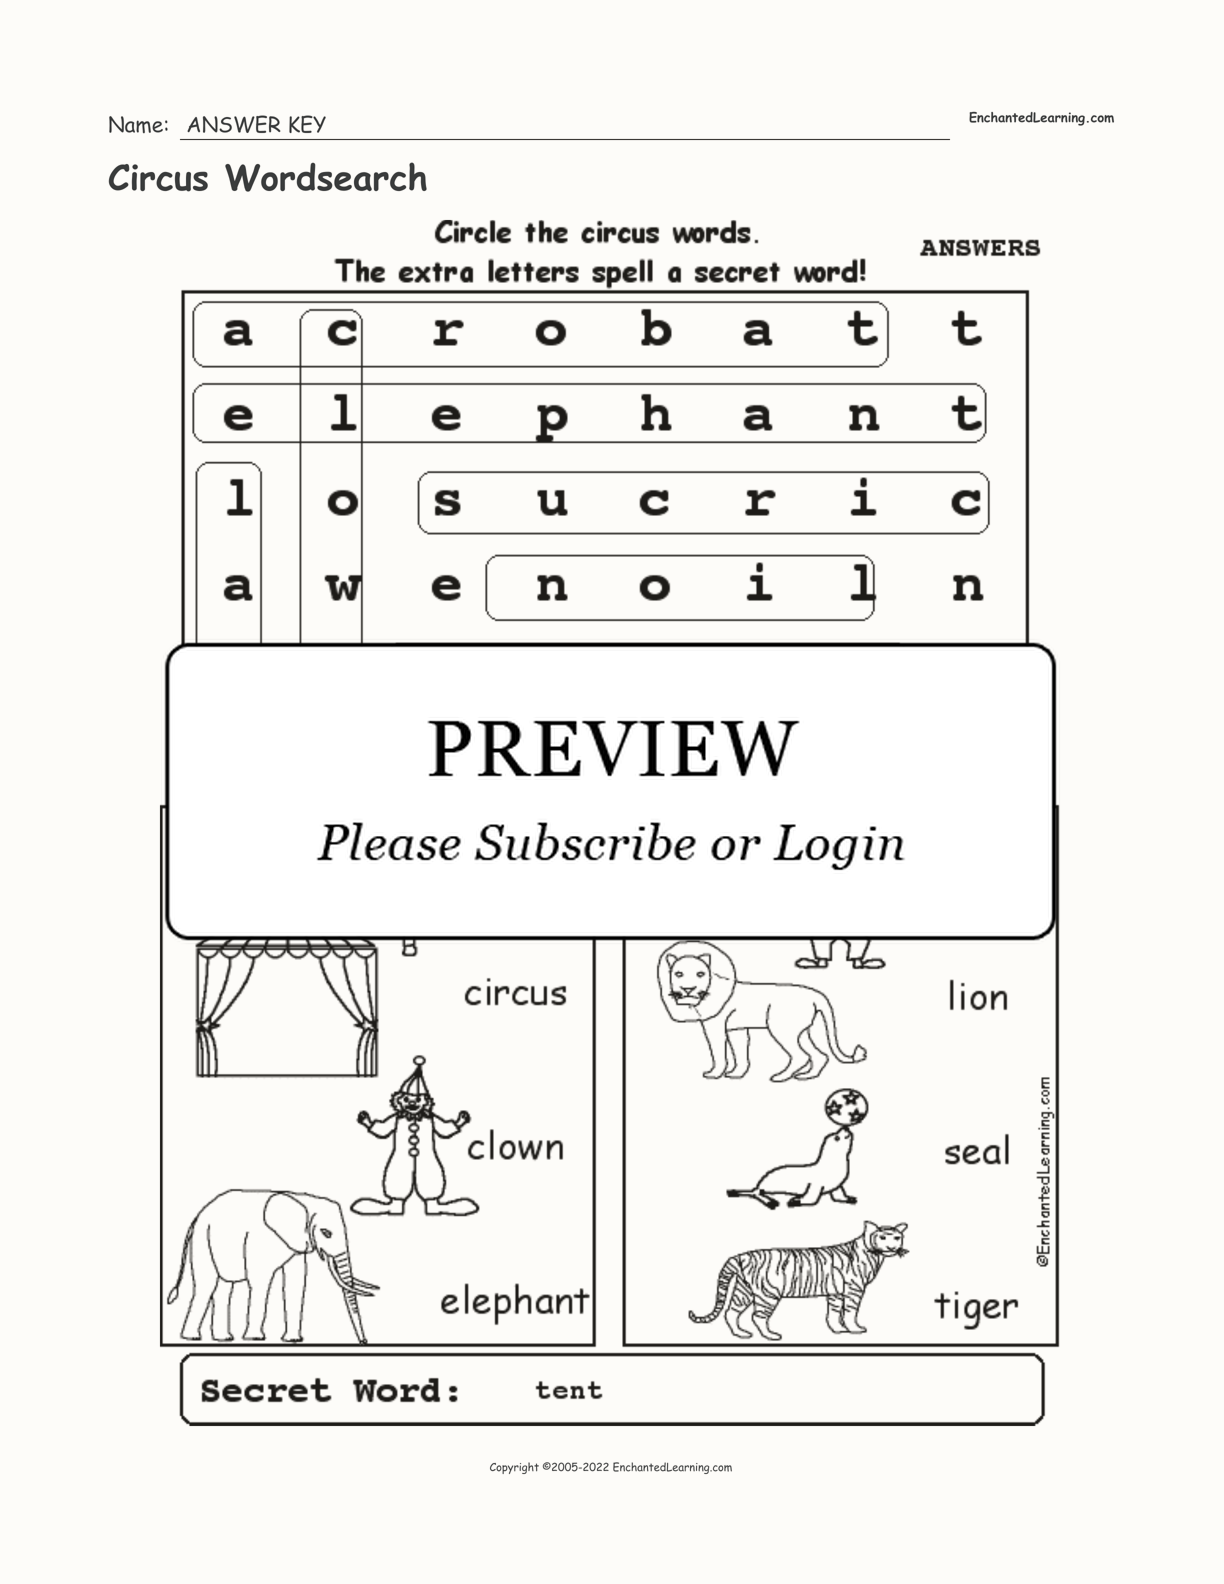 Circus Wordsearch interactive worksheet page 2